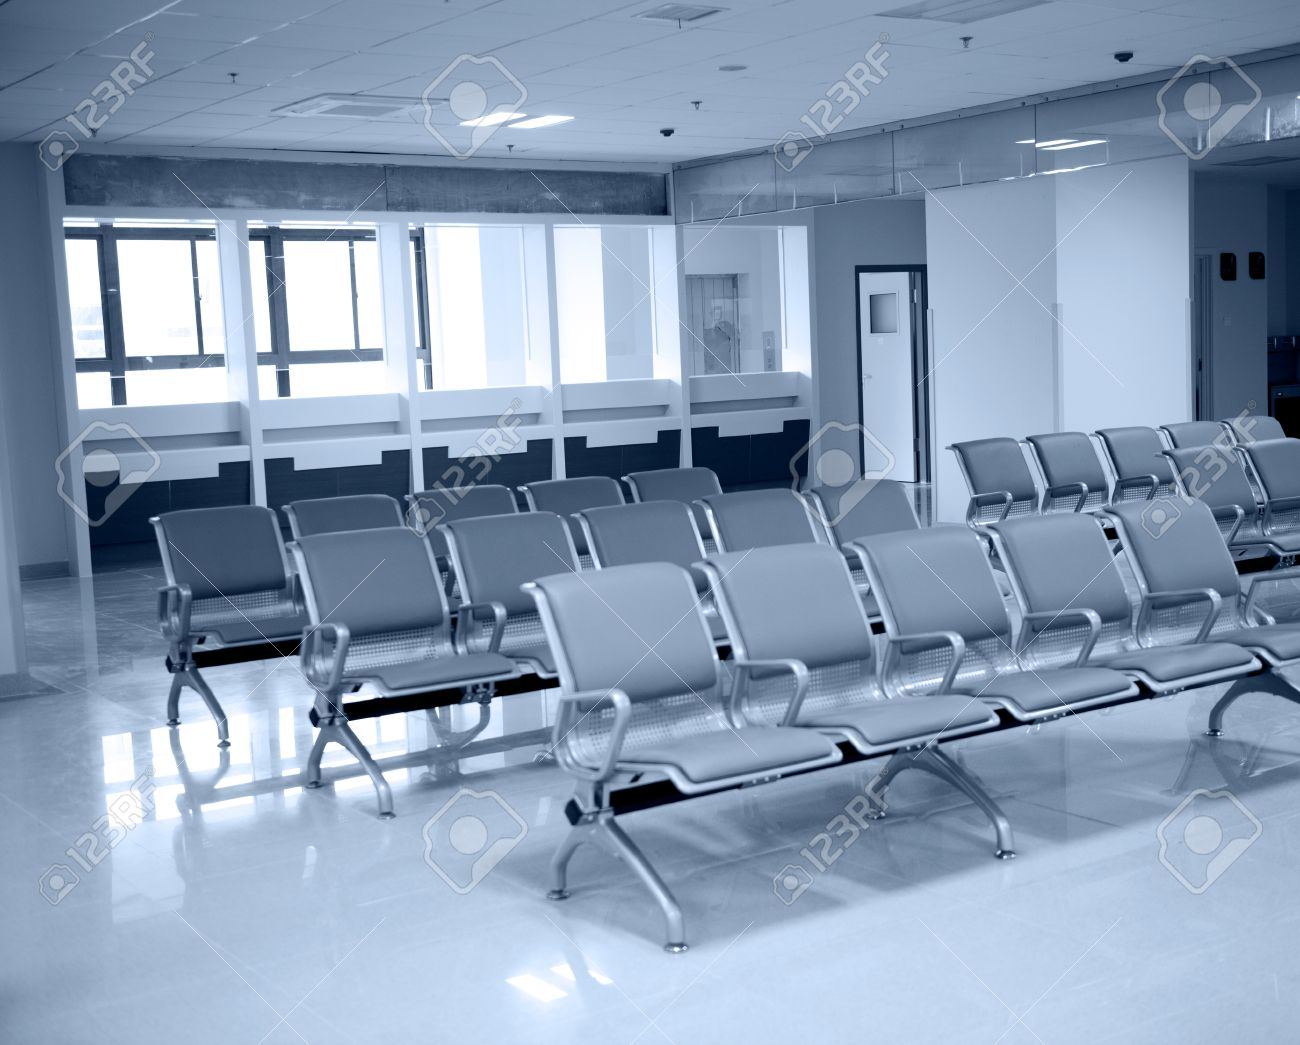 Empty chair in room - Hospital Waiting Room With Empty Chairs Stock Photo 17828381